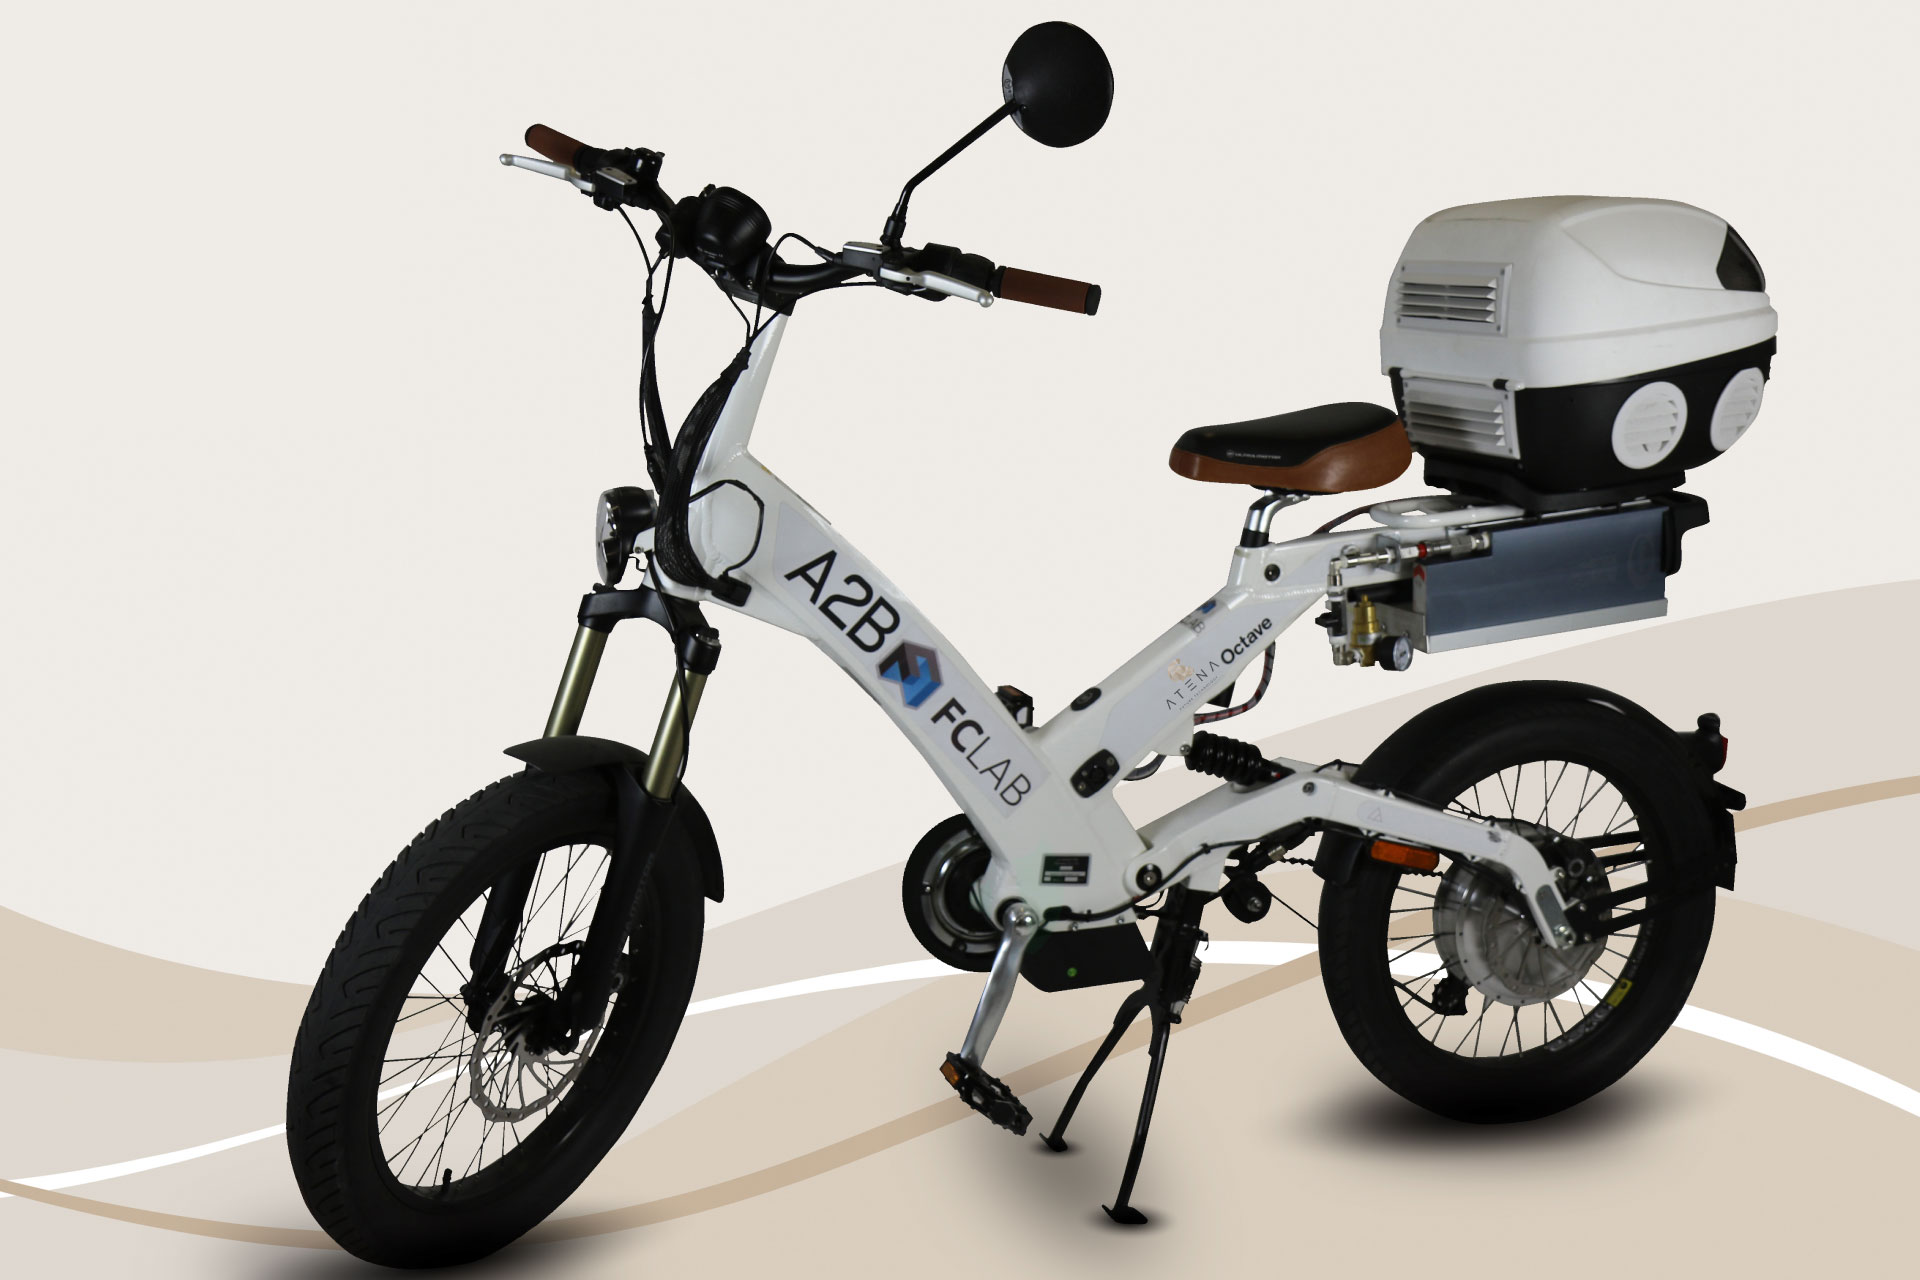 HyBike Sport MB500 | Distretto Atena Future Technology